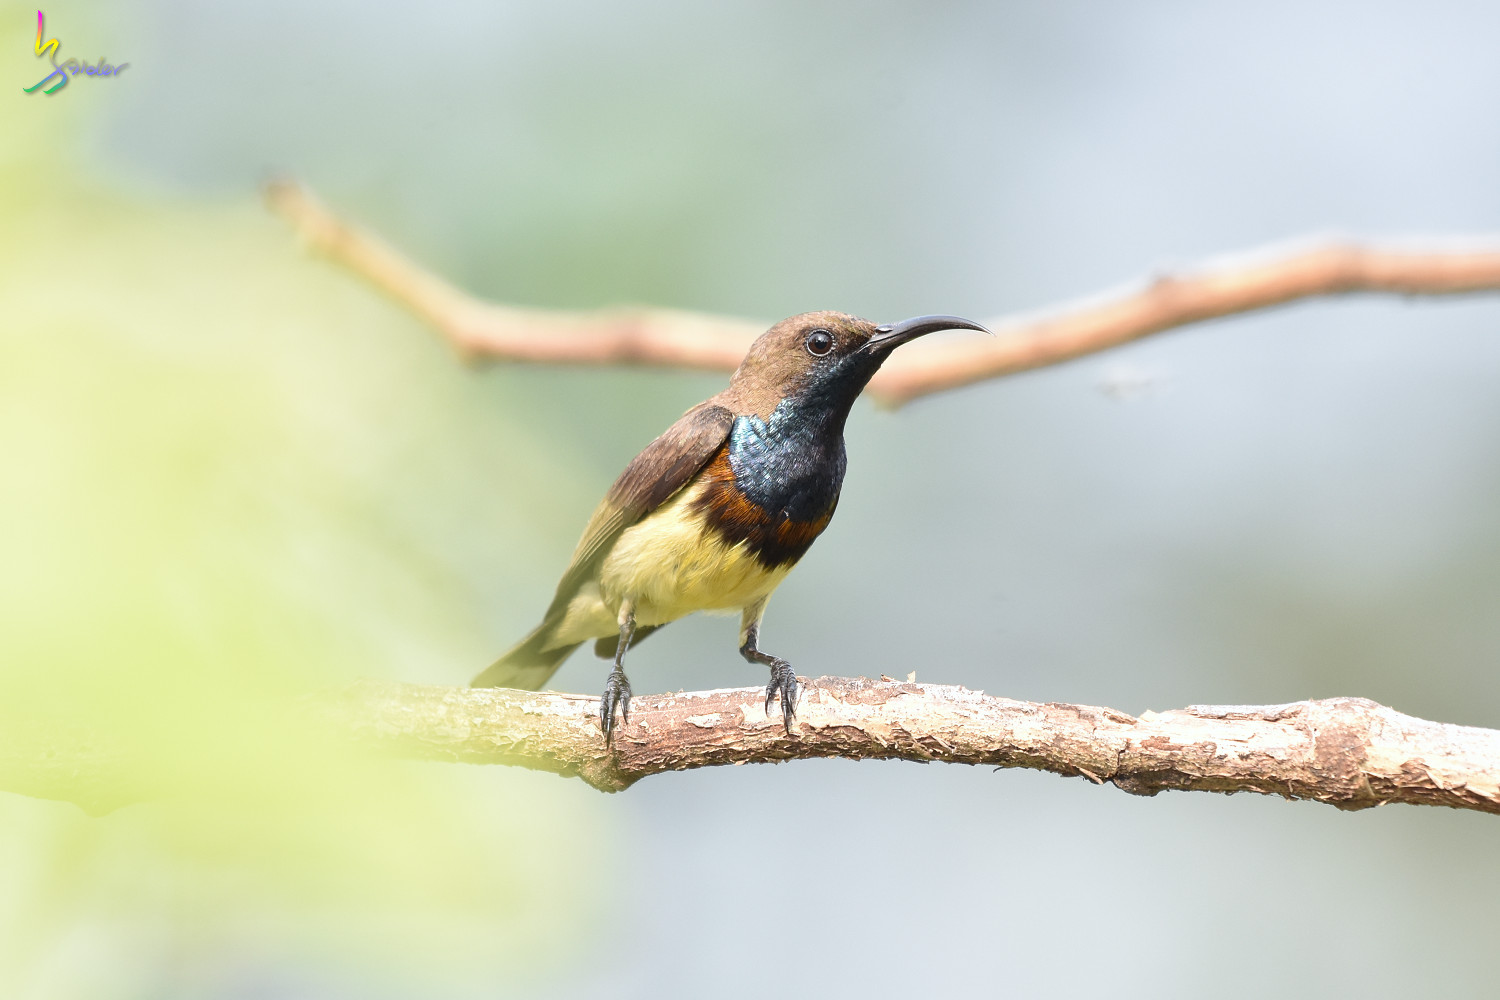 Olive-backed_Sunbird_0817